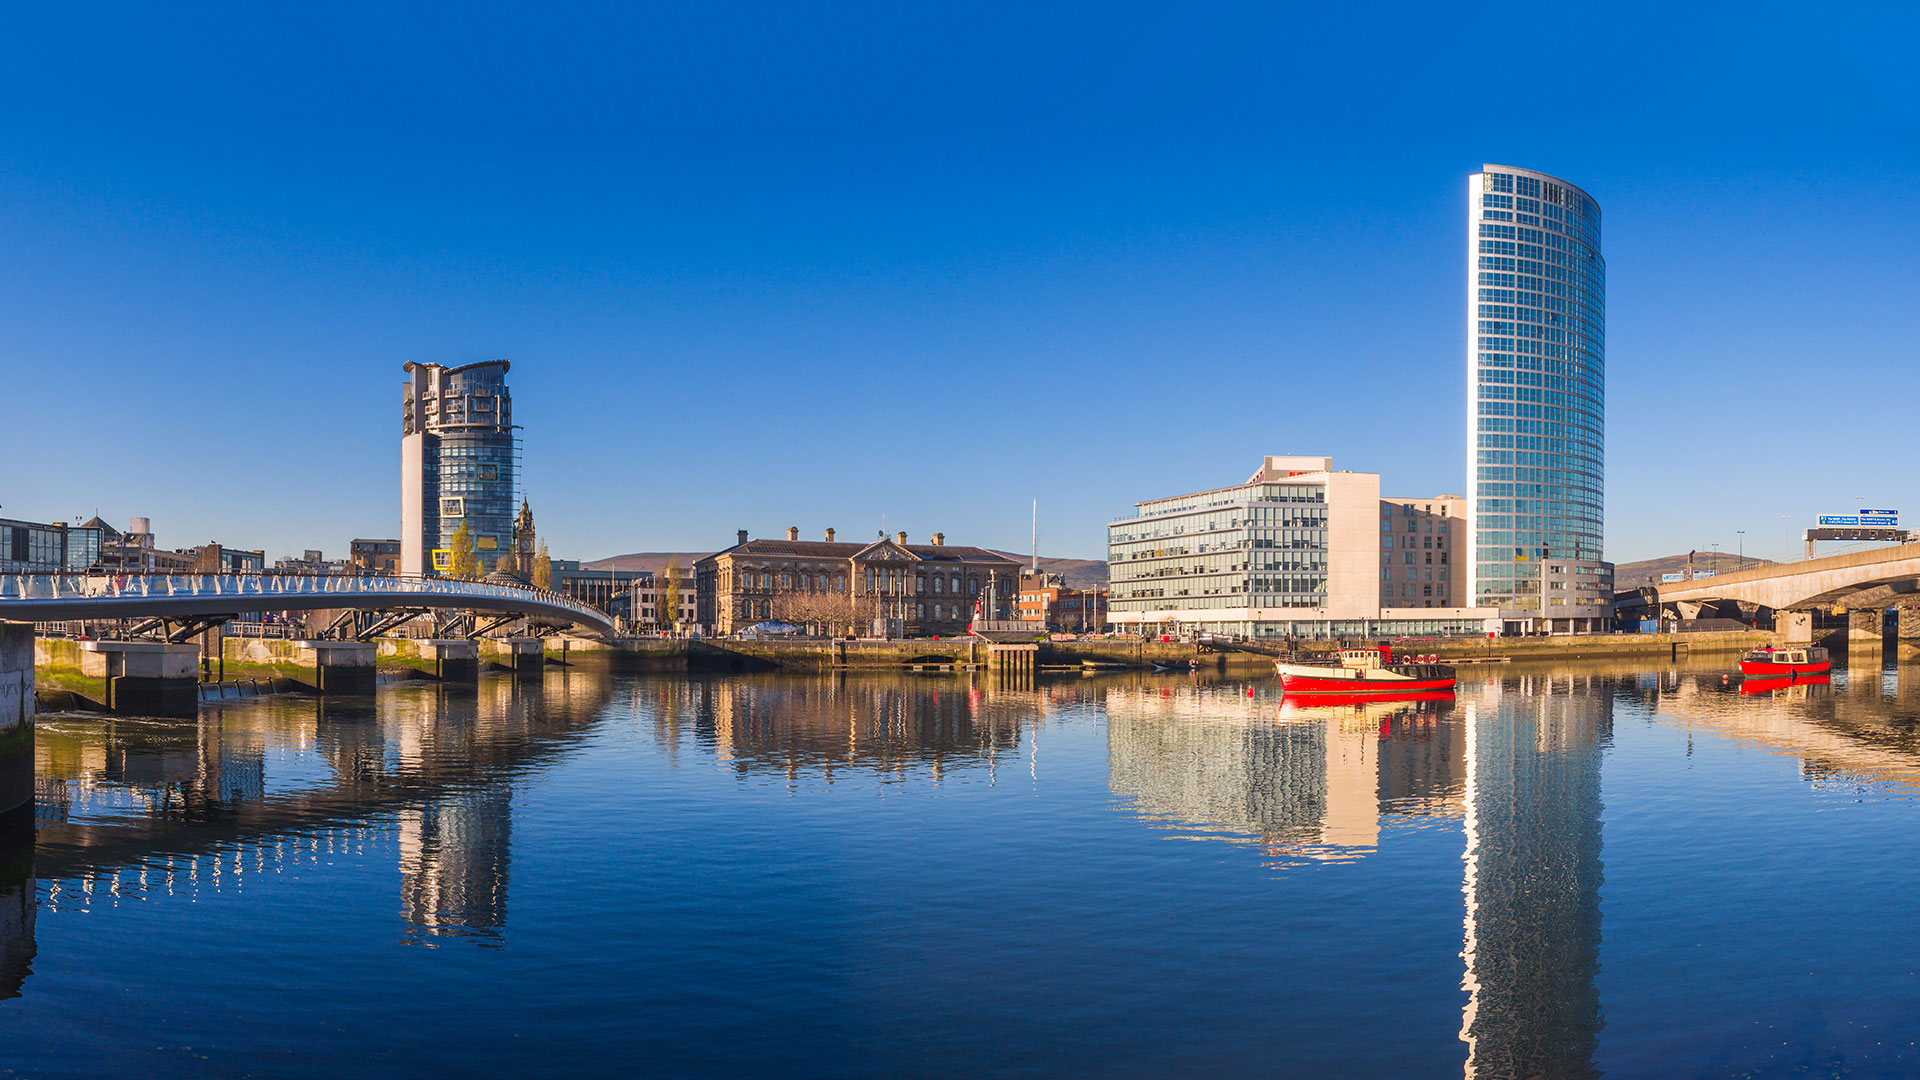 Obel Tower Belfast